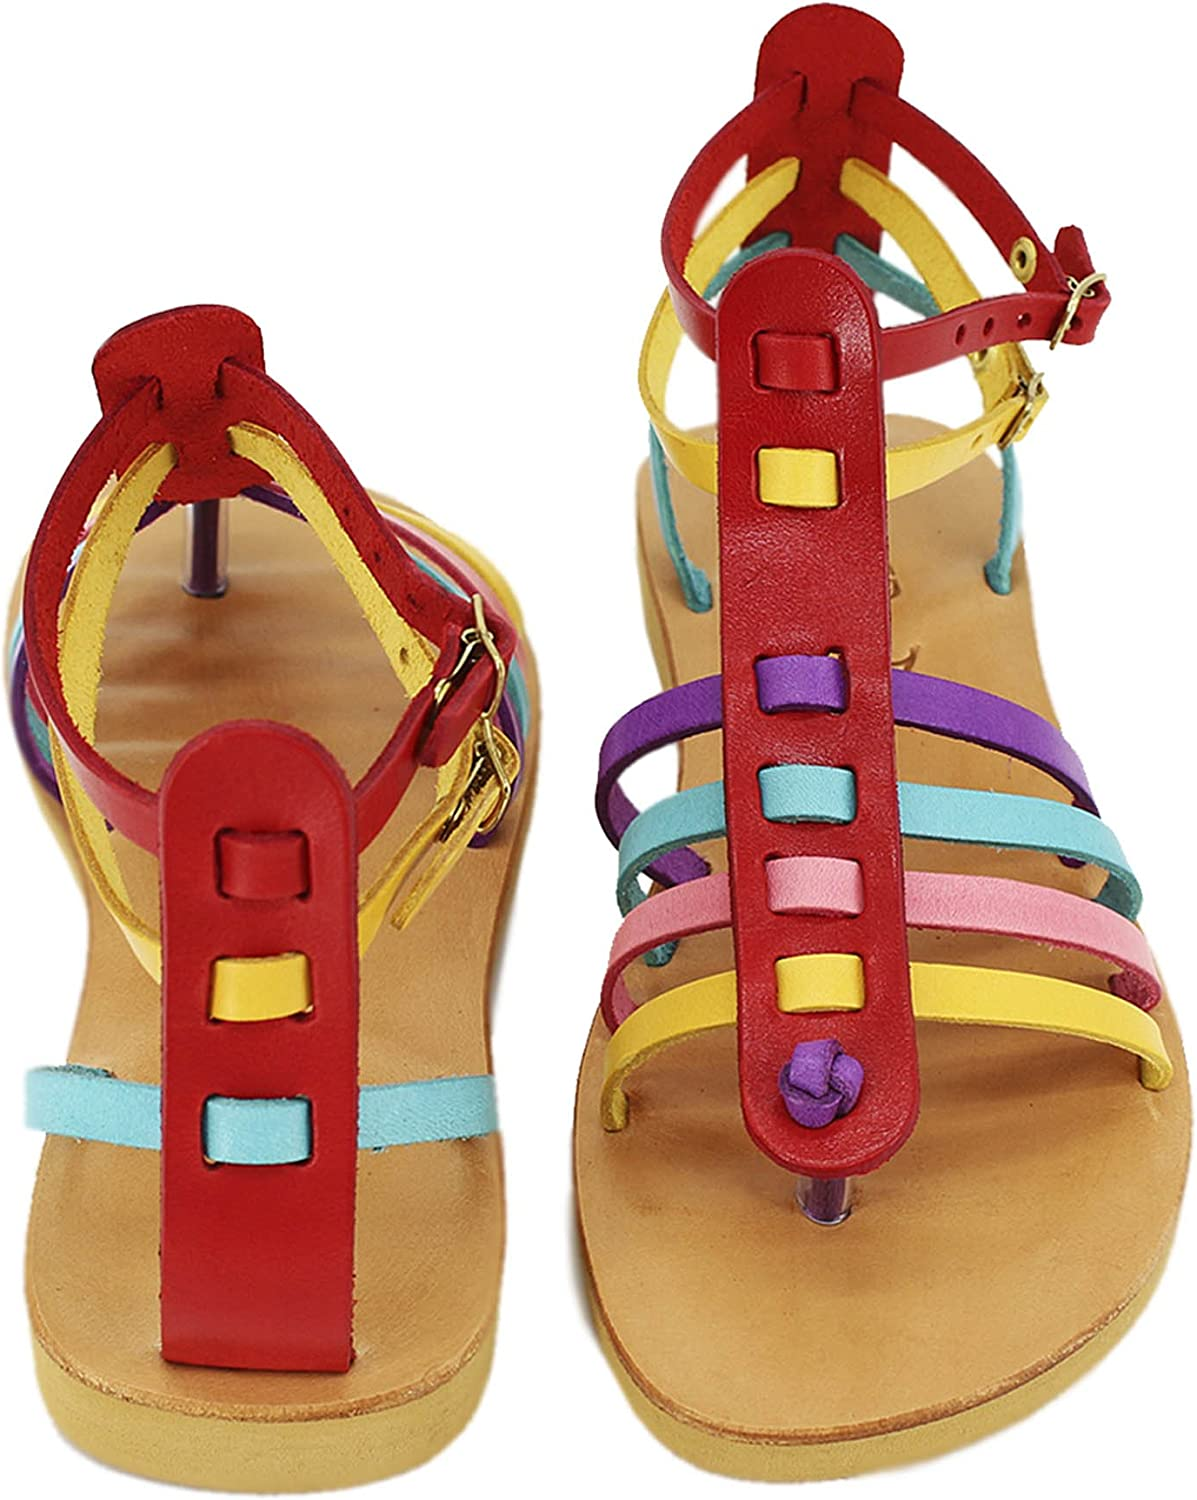 Gladiator, Handmade Leather Sandals, Multicolord Sandals, Strappy Sandals, Double Ankle Strap - BONBON